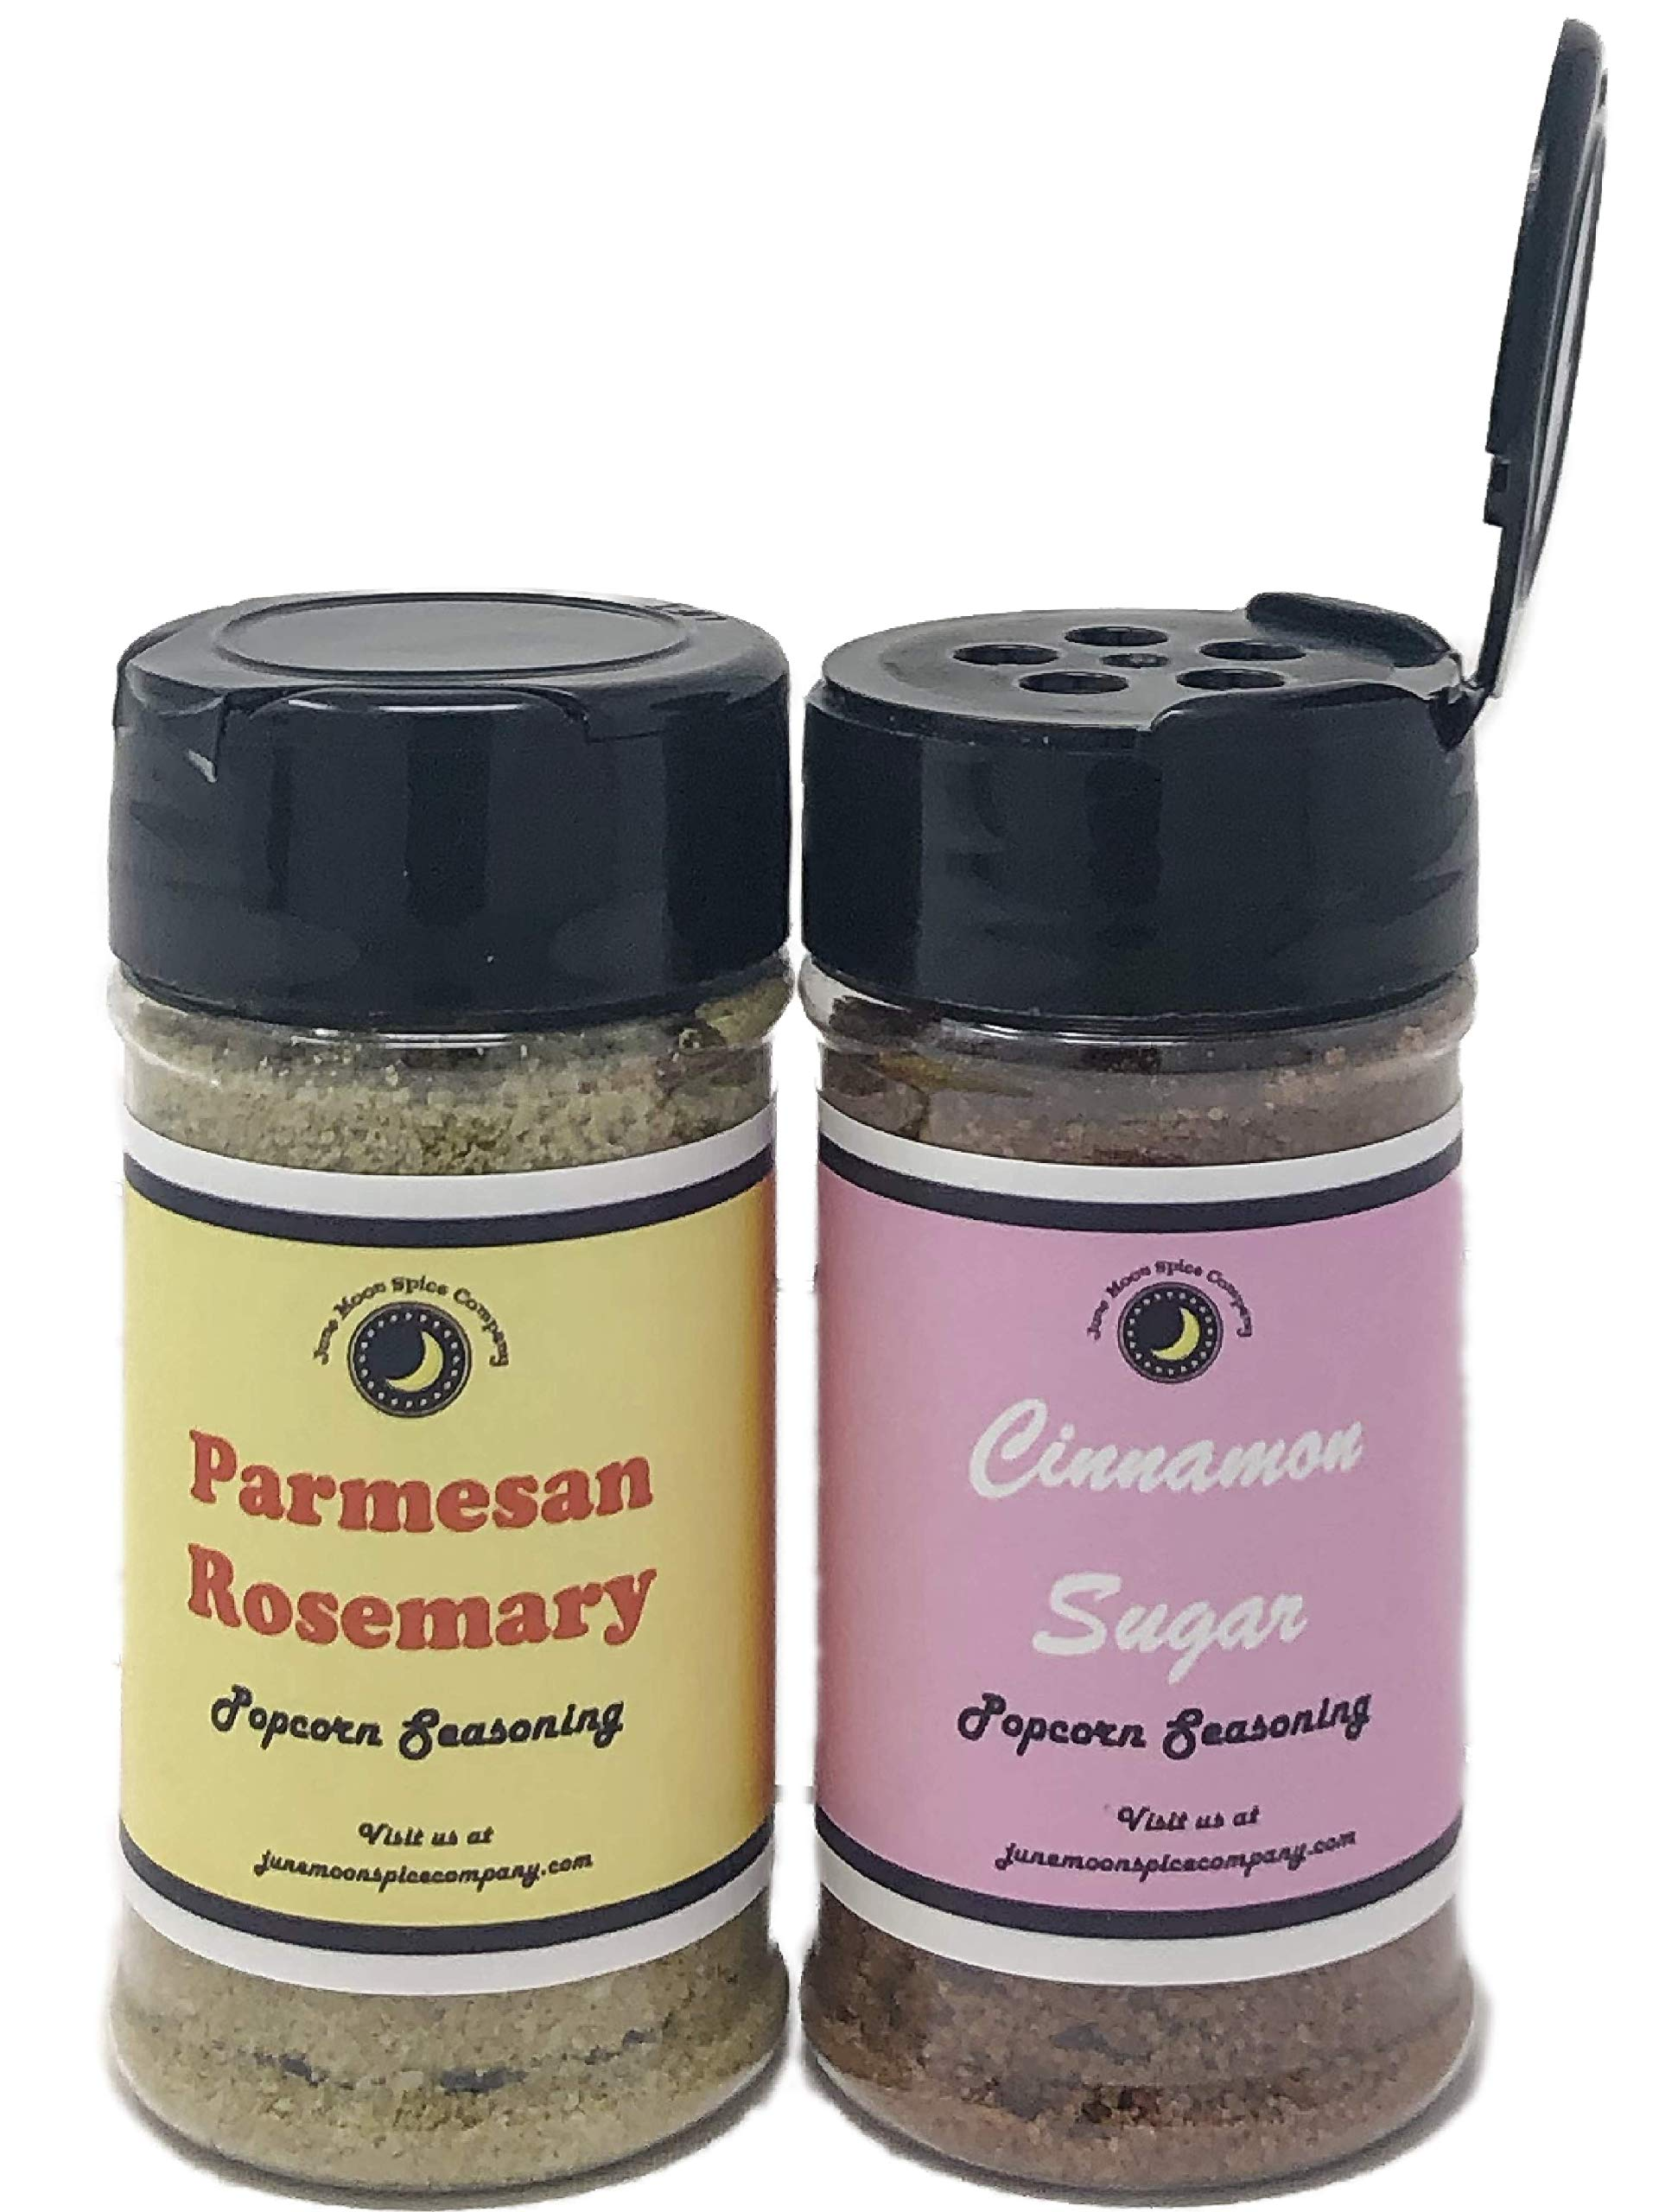 Popcorn Seasoning 2 Pack | Cinnamon Sugar | Parmesan Rosemary | Includes Six Popcorn Bags